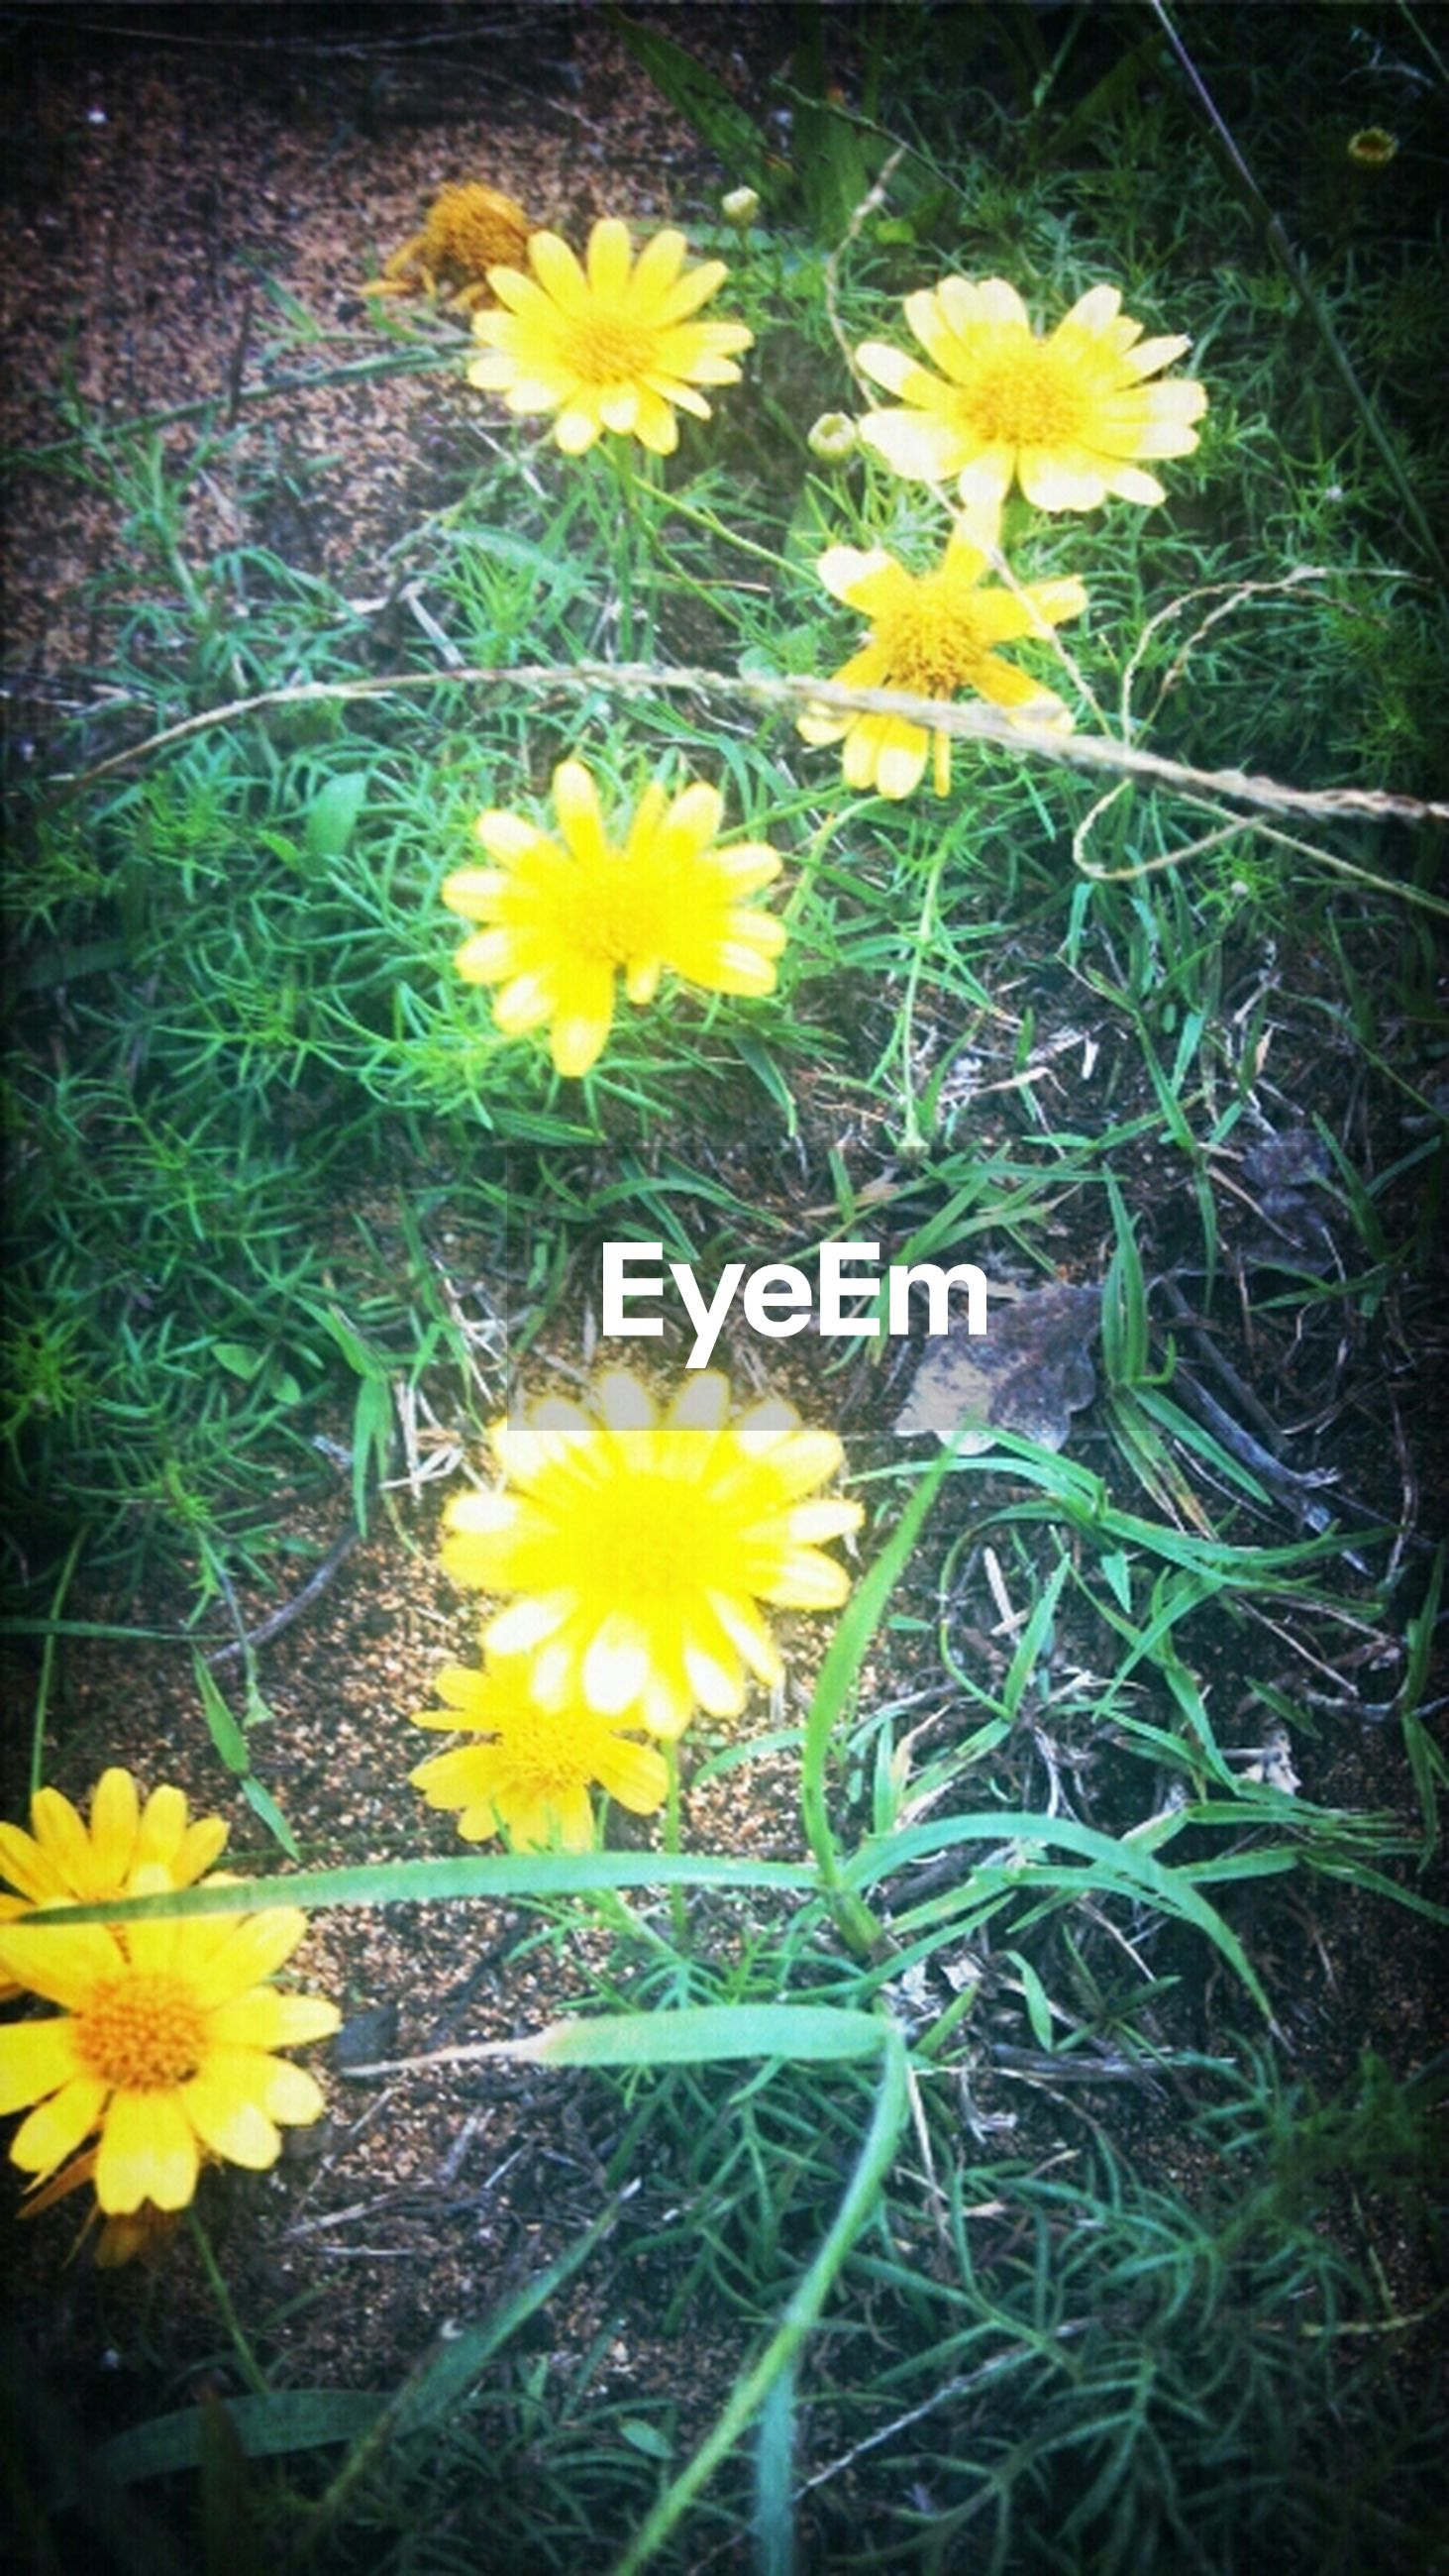 flower, yellow, freshness, fragility, petal, growth, flower head, beauty in nature, blooming, plant, daisy, nature, field, high angle view, in bloom, pollen, wildflower, stem, day, blossom